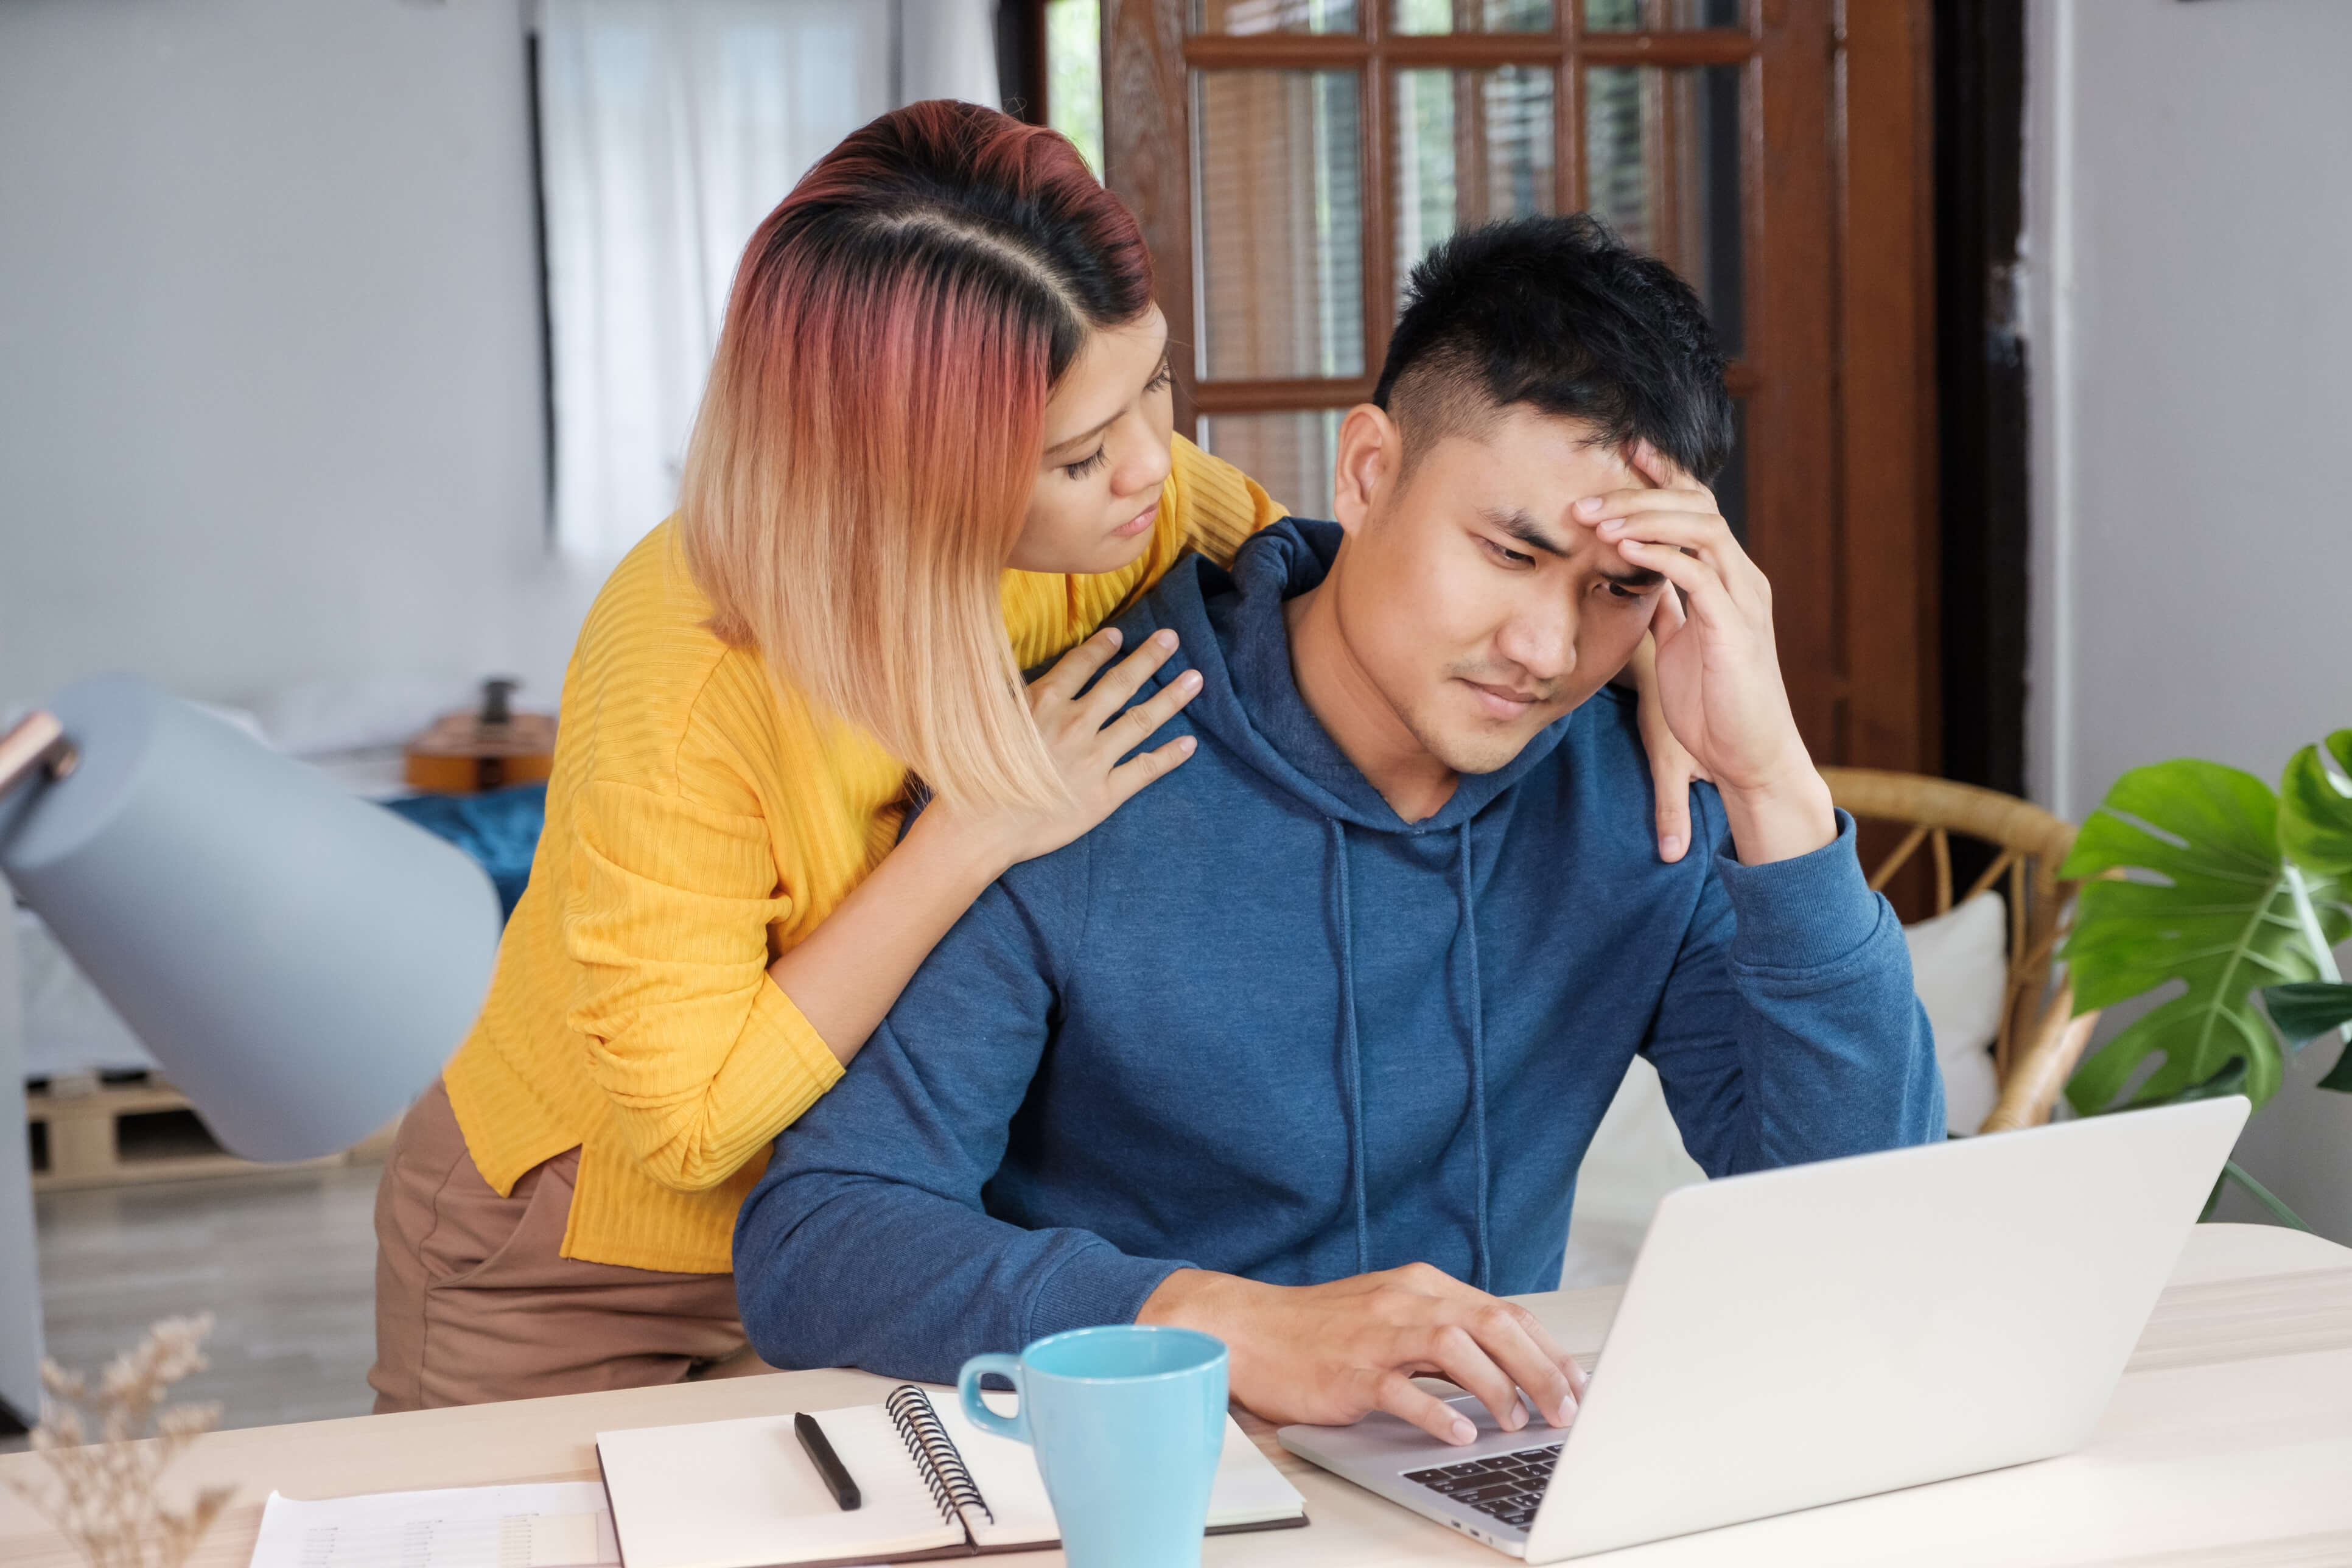 Wife consoling husband after identity theft incident